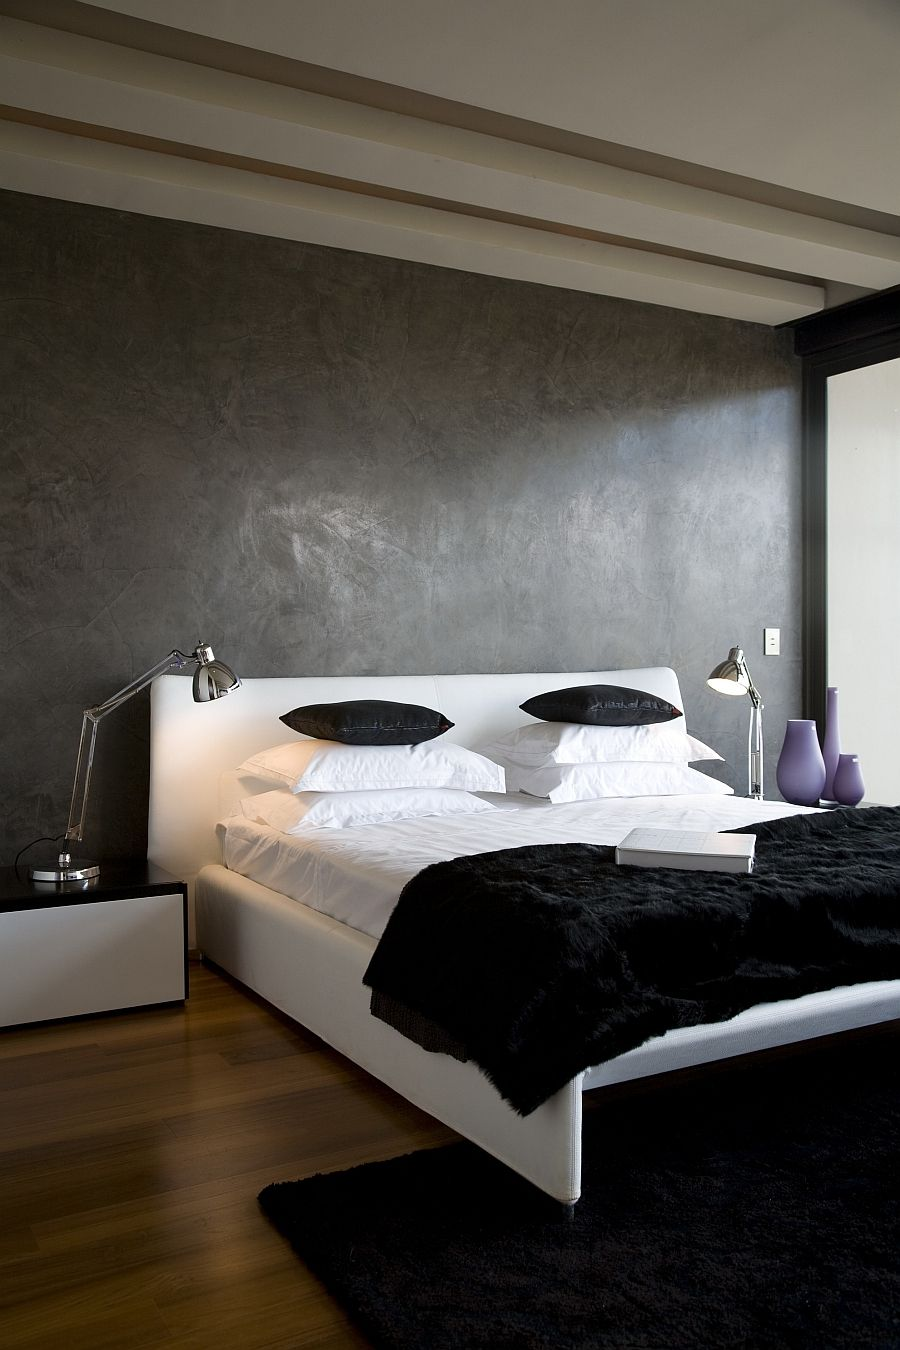 sharp groovy white bedroom inspiration furniture | House Serengeti: Sharp Angles, Contemporary Architecture ...